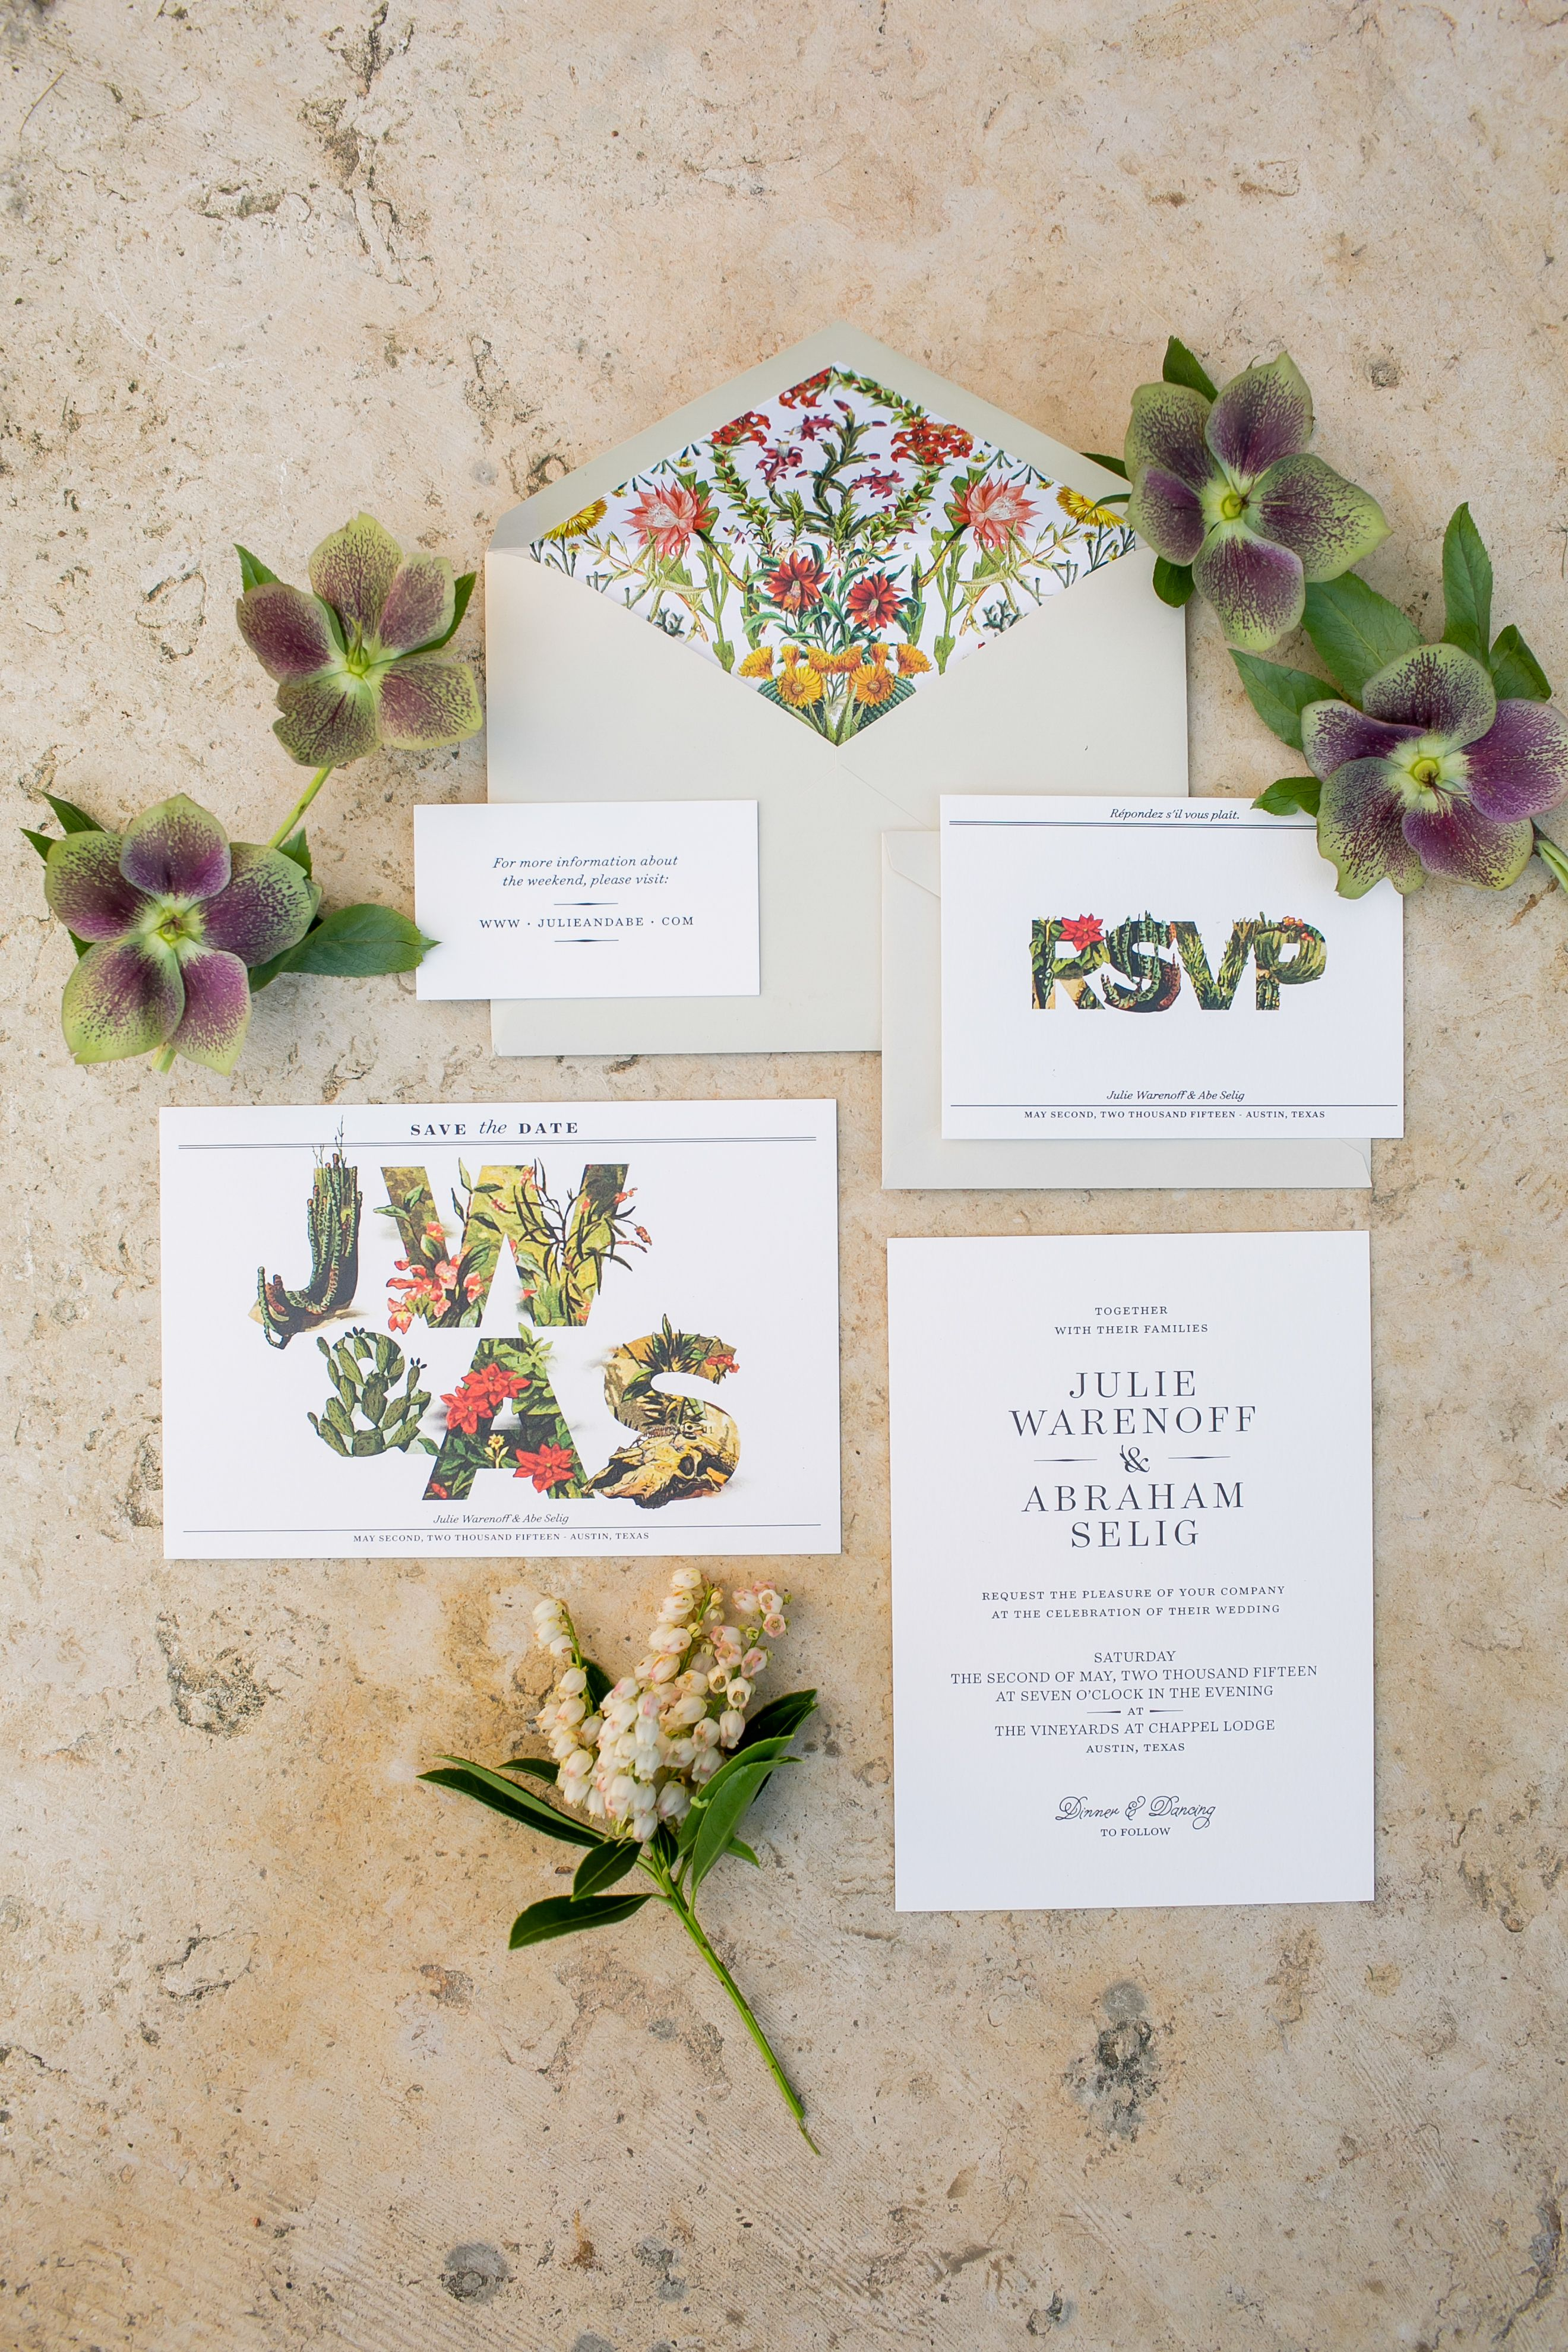 Howto Beautifully Produce an Invitation Package